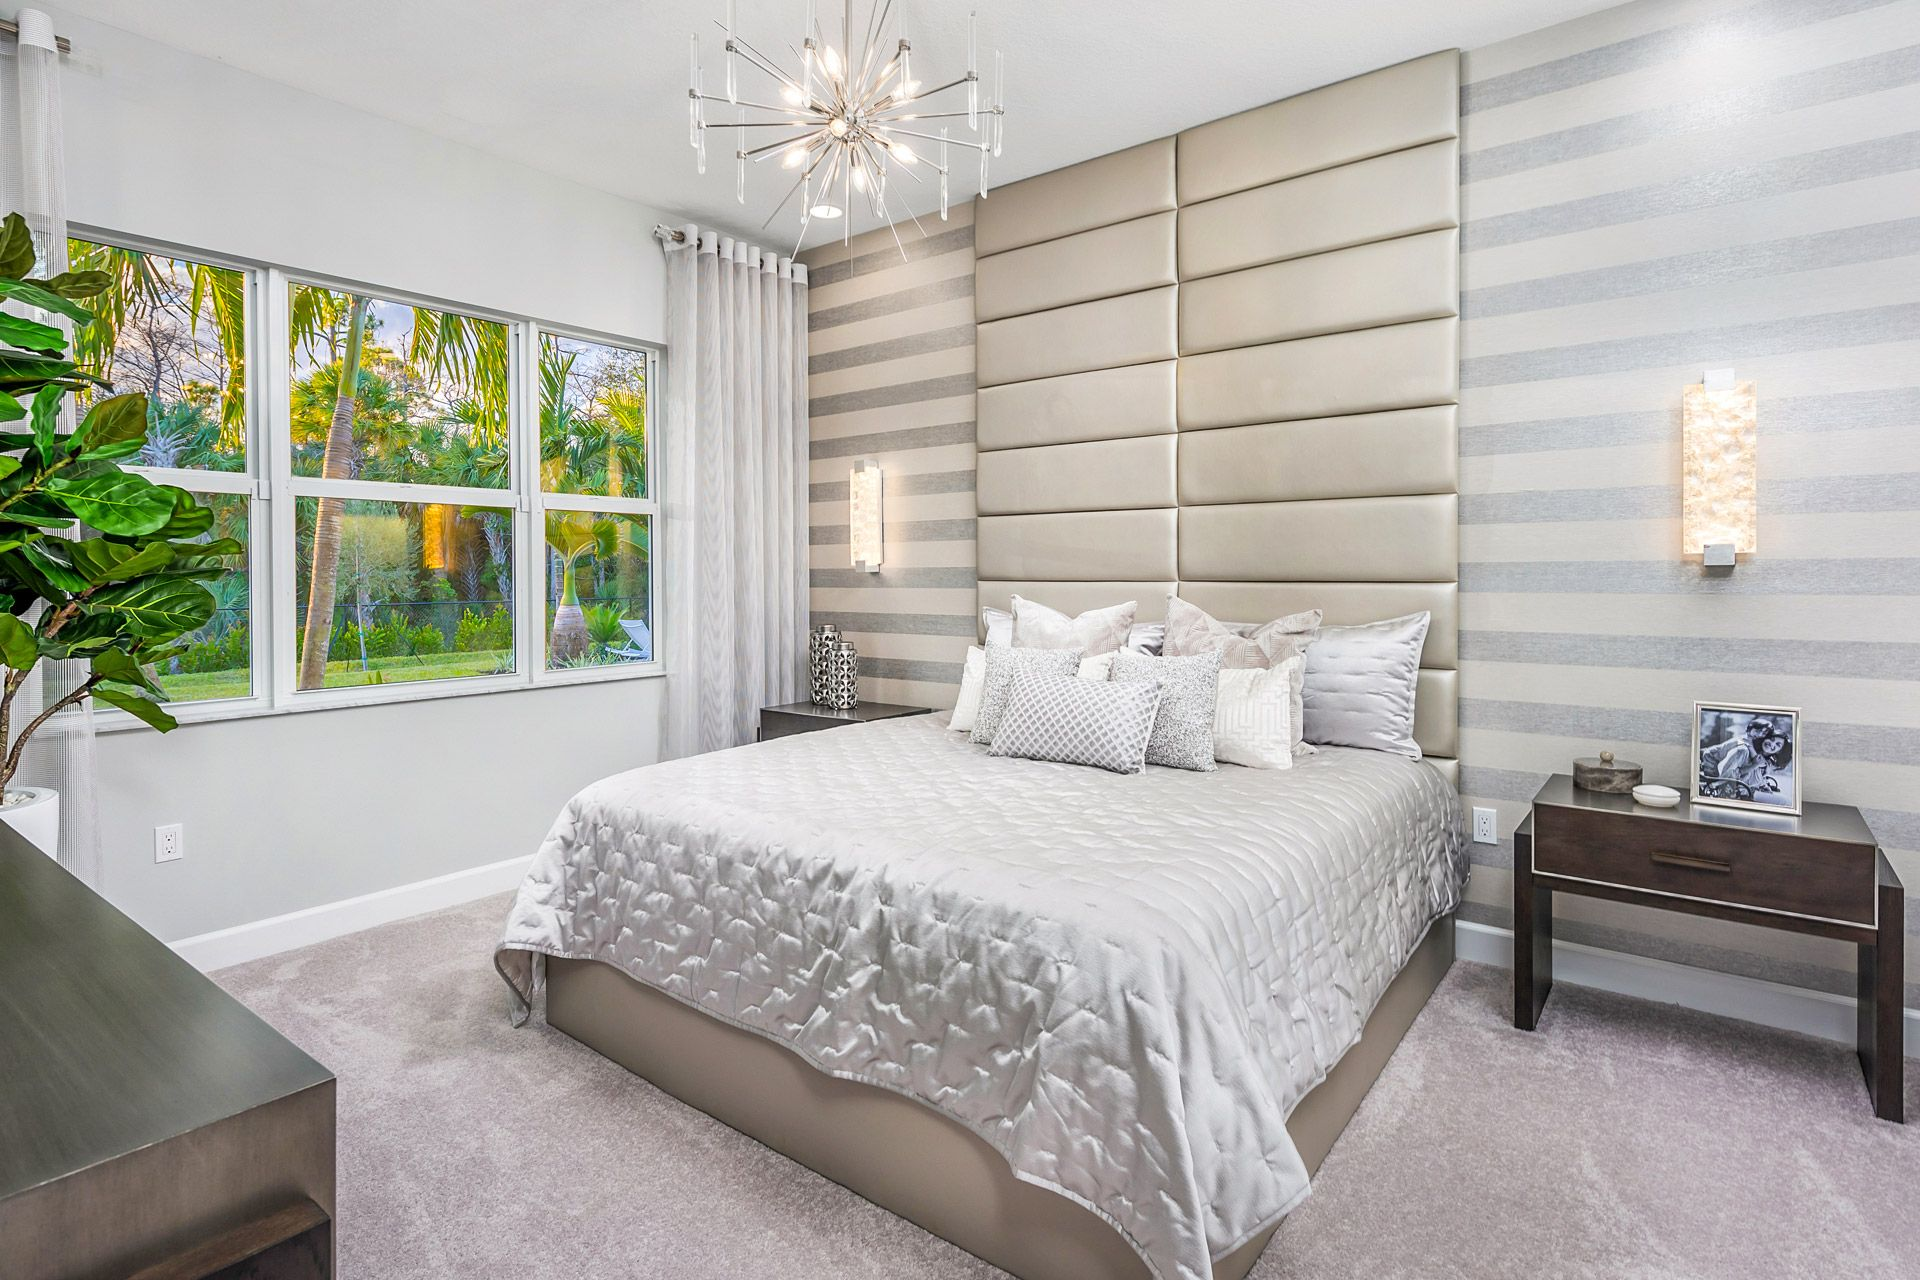 Bedroom featured in the Flamingo By GL Homes in Naples, FL